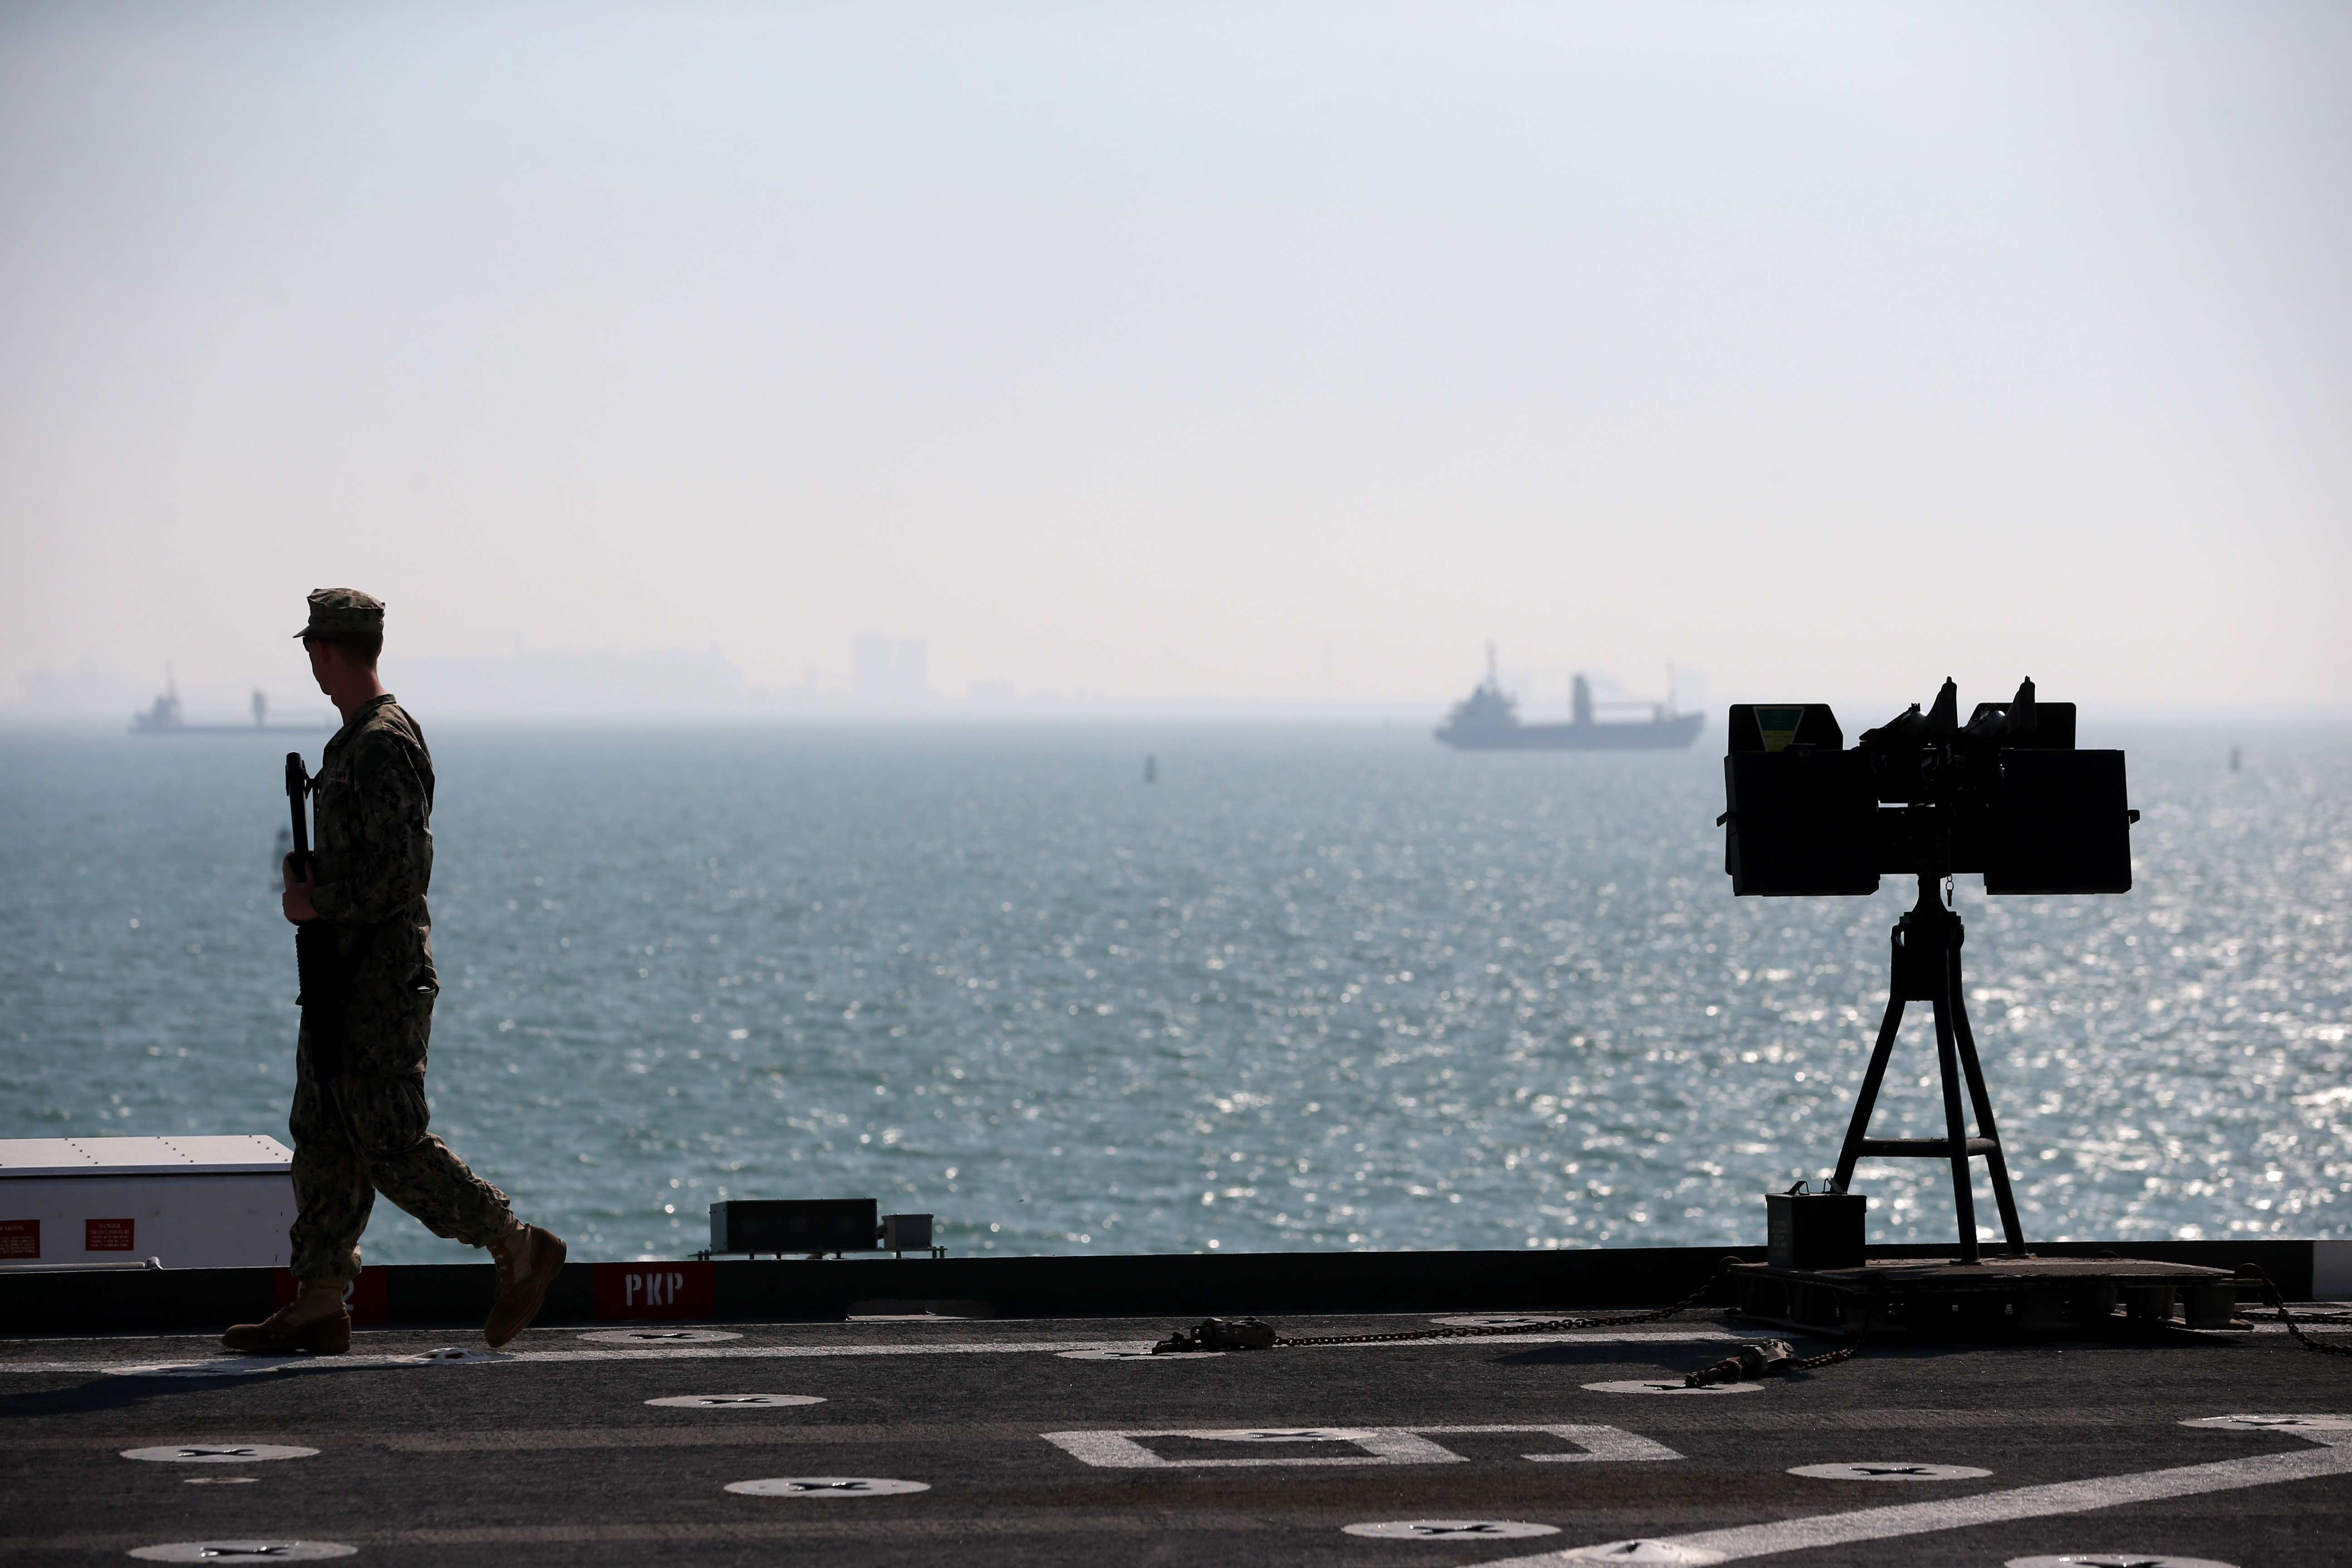 A Military guard patrols the deck of the USS Ponce where US Secretary of State Chuck Hagel was touring, on Dec. 6, 2013 in Manama, Bahrain.